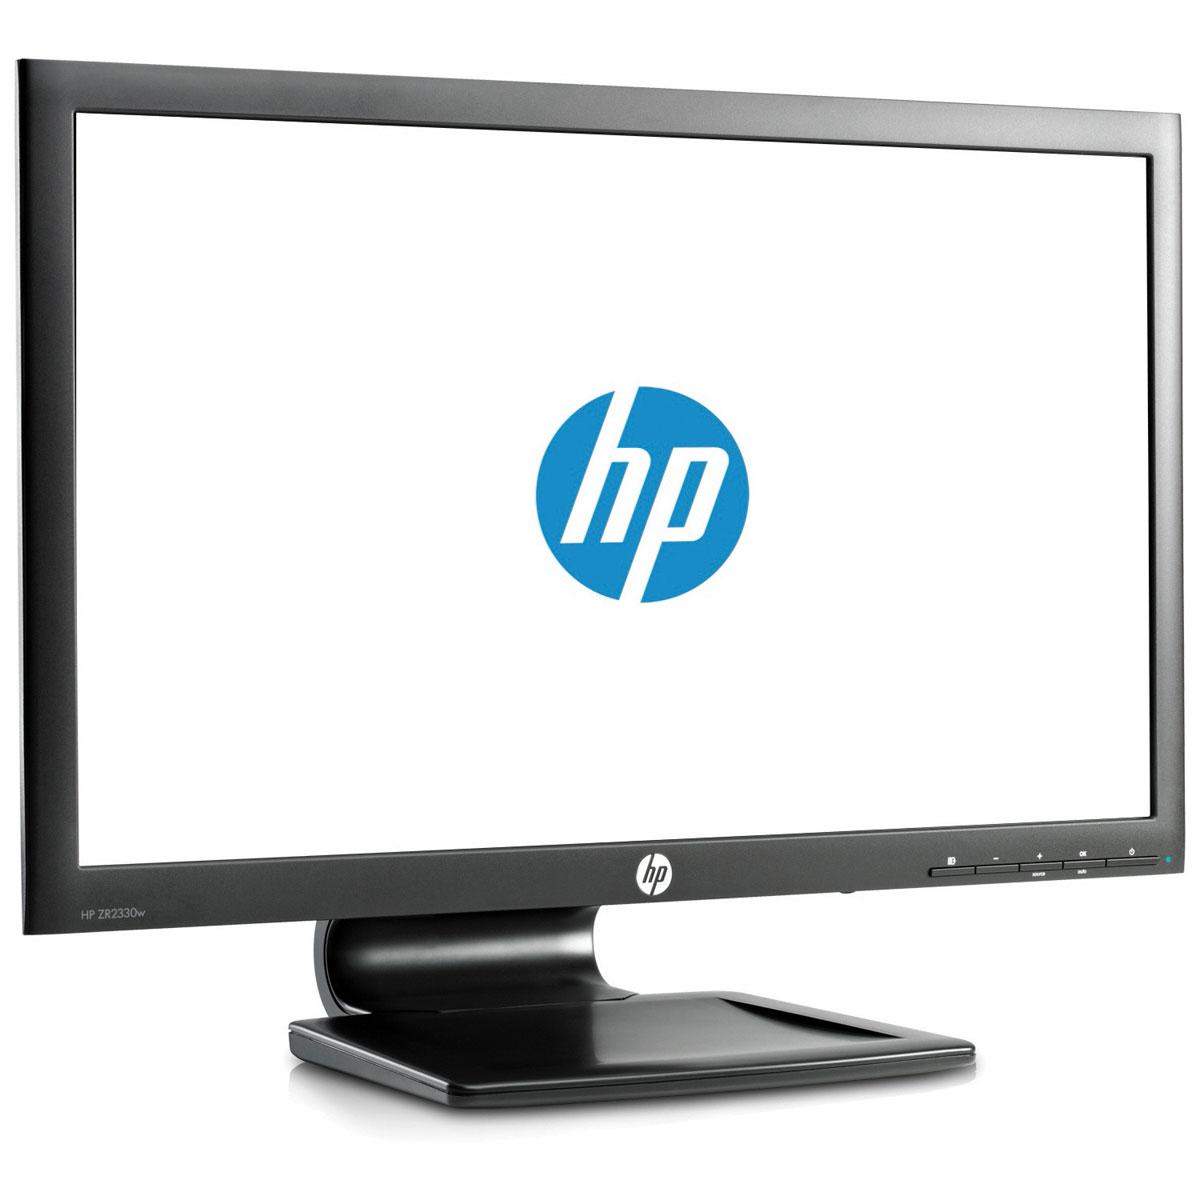 Hp 24 led zr2330w c6y18at ecran pc hp sur for Meilleur moniteur 24 pouces